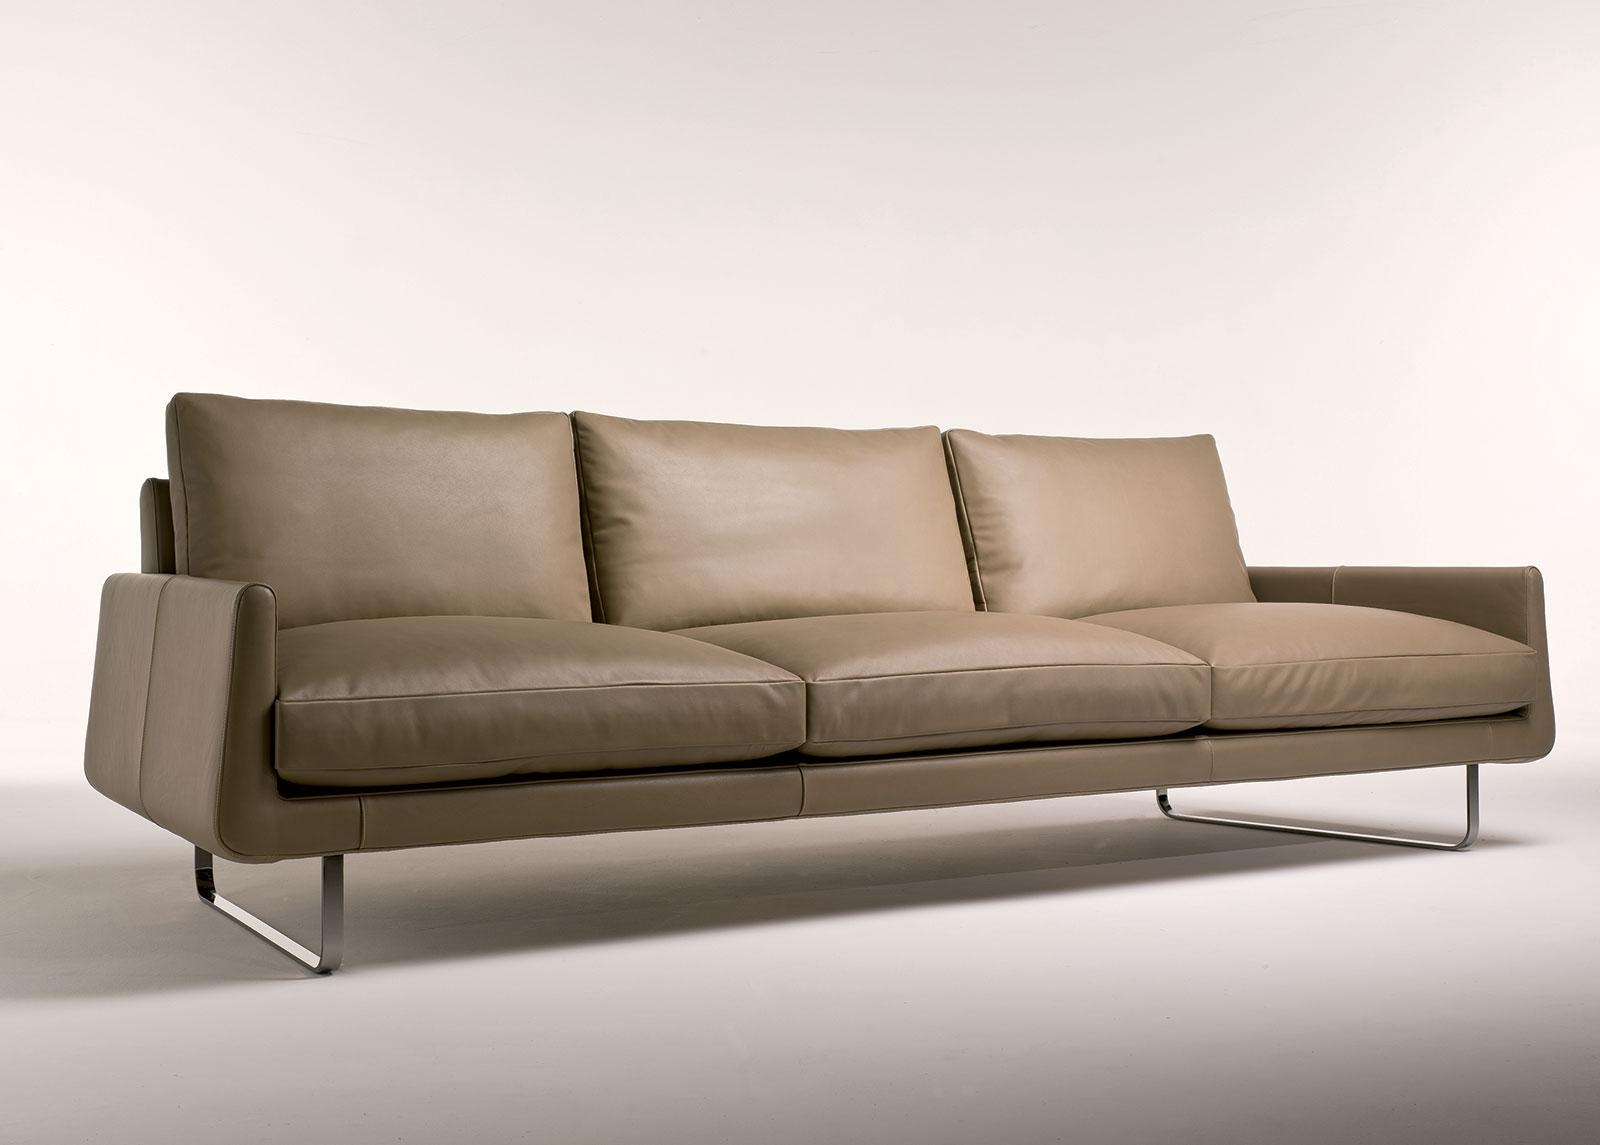 Joshua 4 Seater Leather Sofa | Shop Online - Italy Dream Design with 4 Seater Sofas